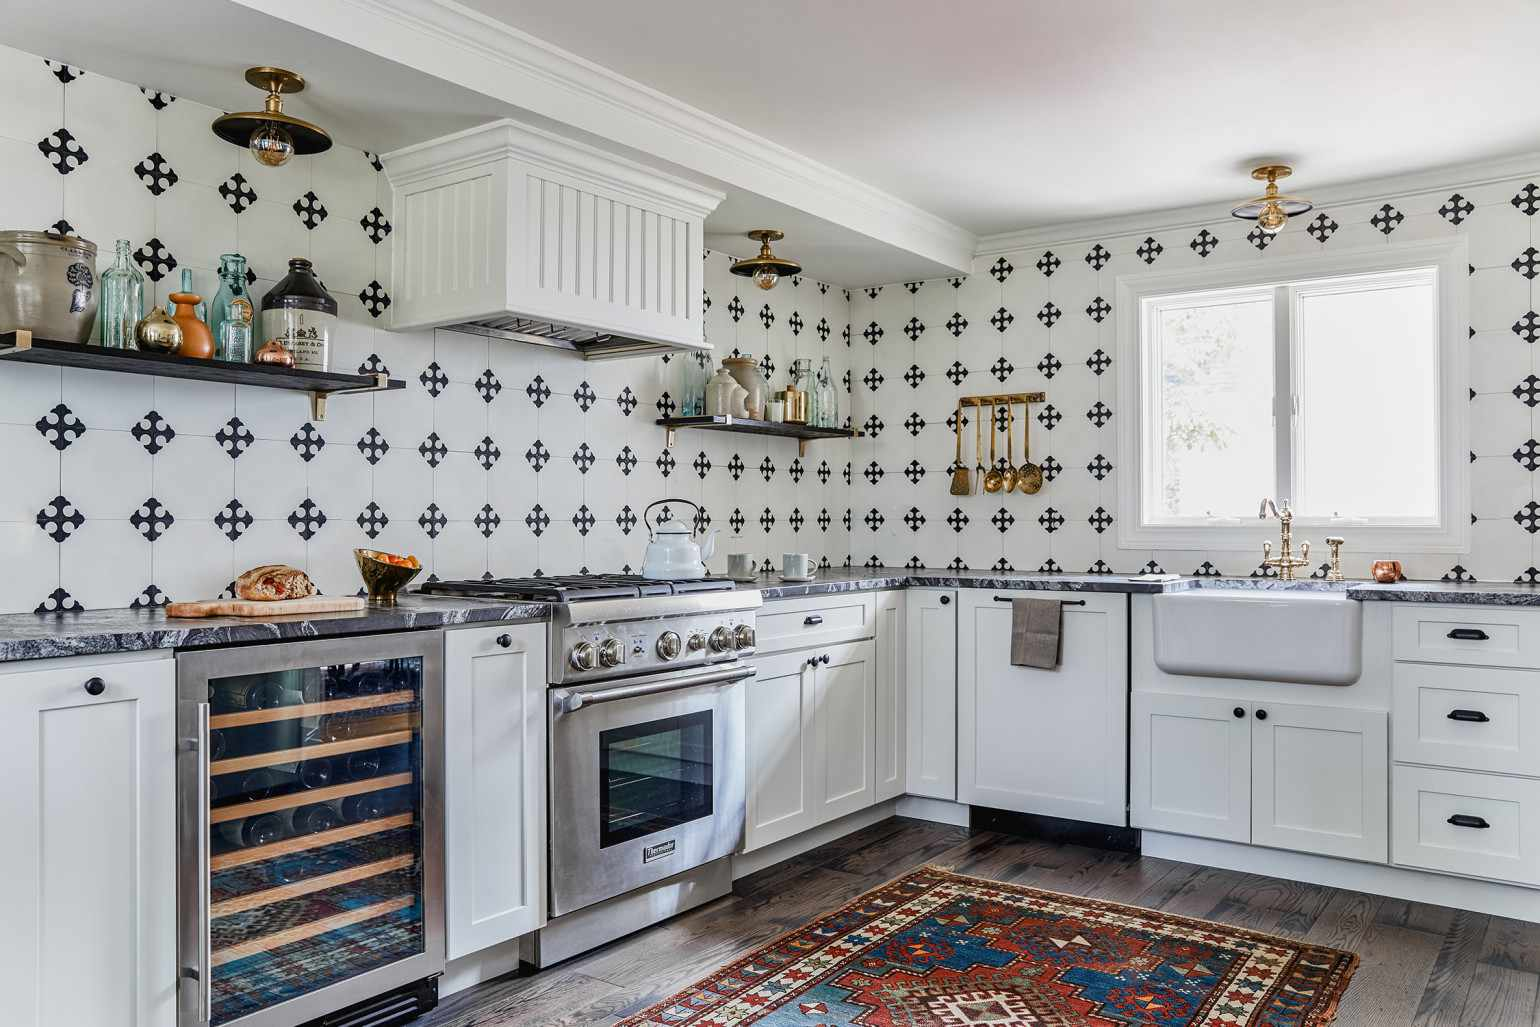 A kitchen with a bold tiled backsplash and a printed red rug on the floor